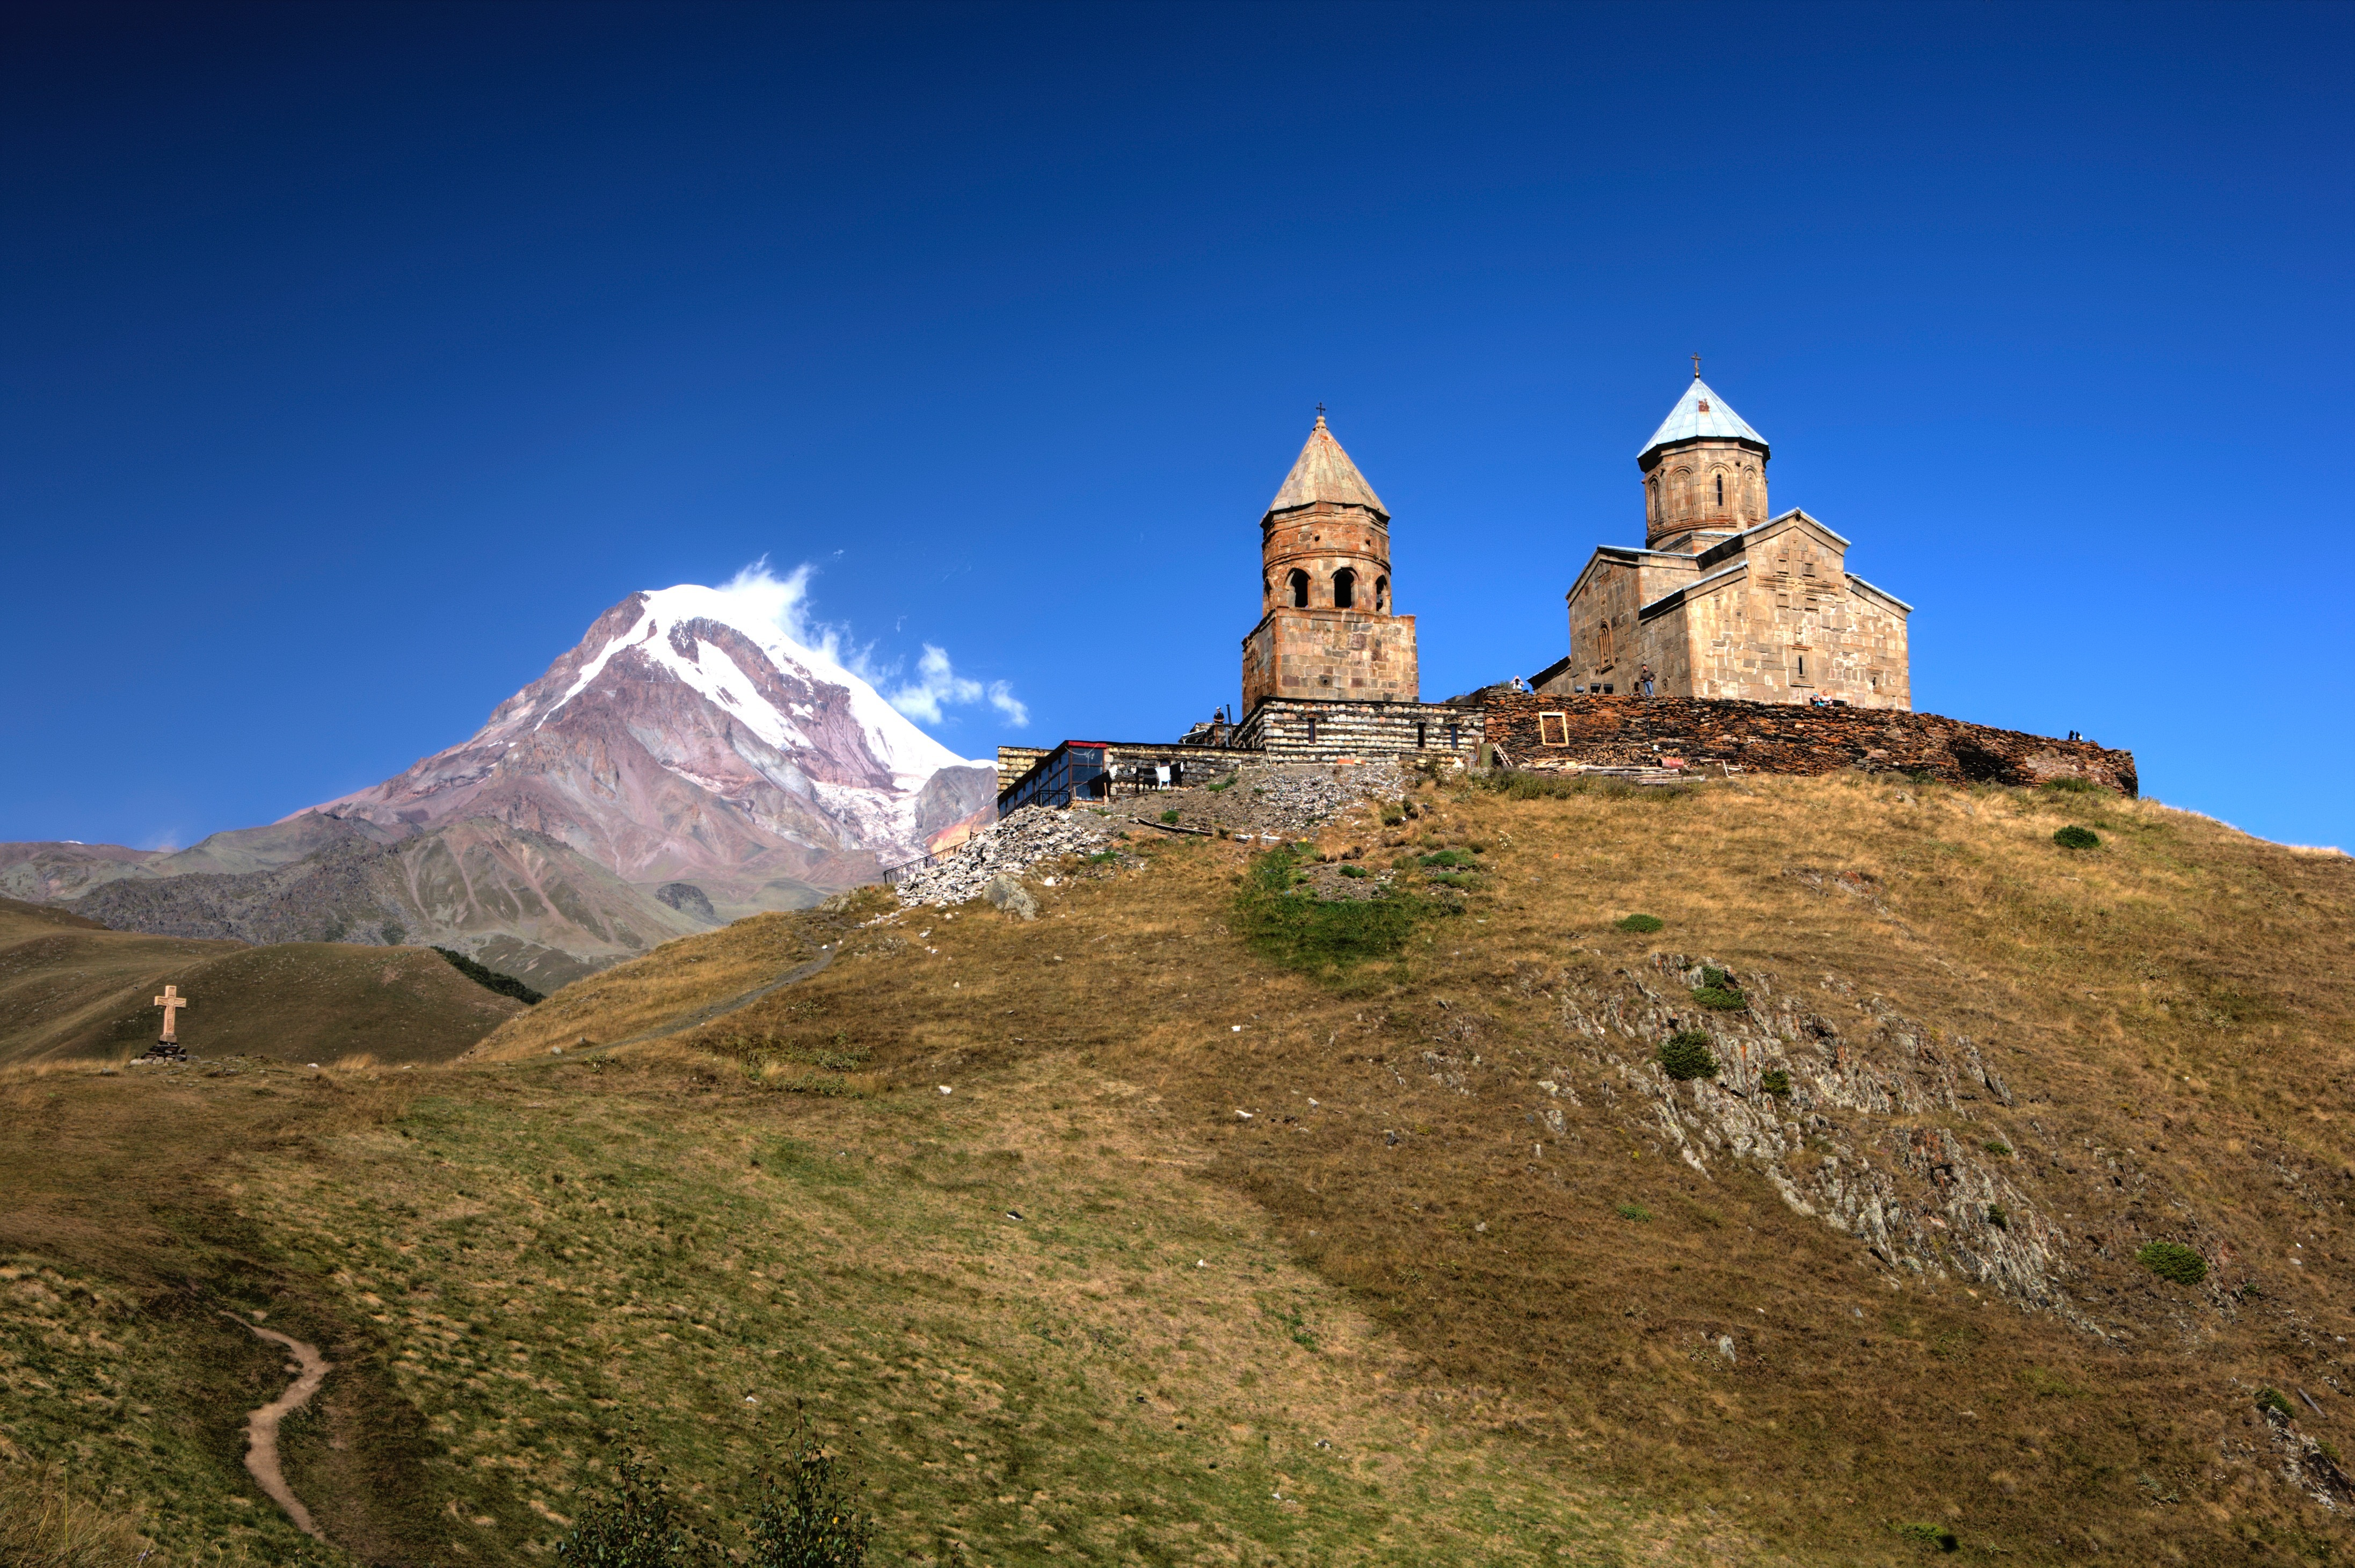 gergeti trinity church kazbeg 2